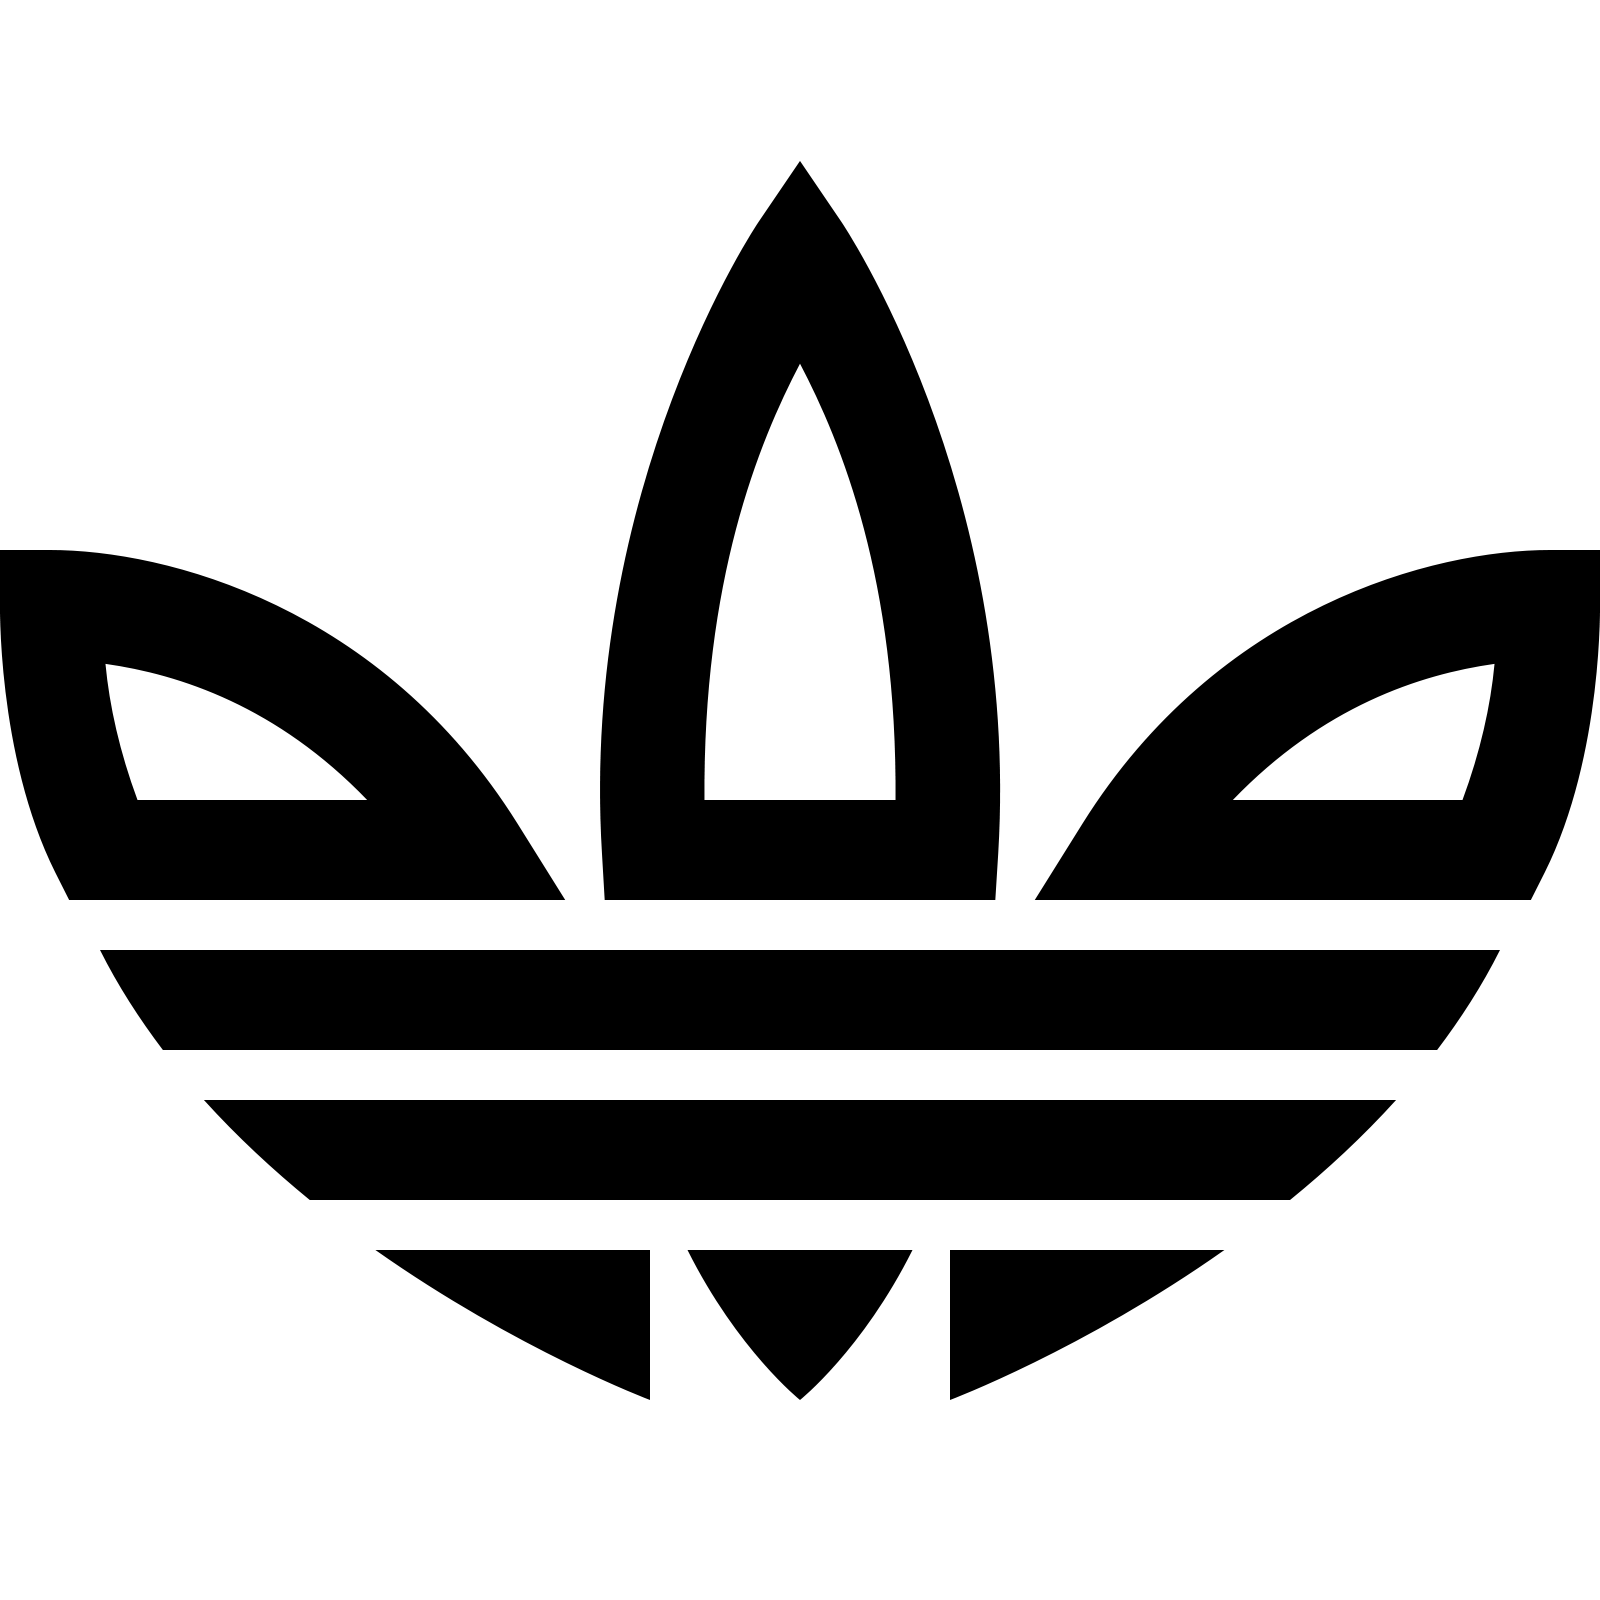 Adidas Trefoil Icon. PNG 50 px - Adidas Trefoil PNG